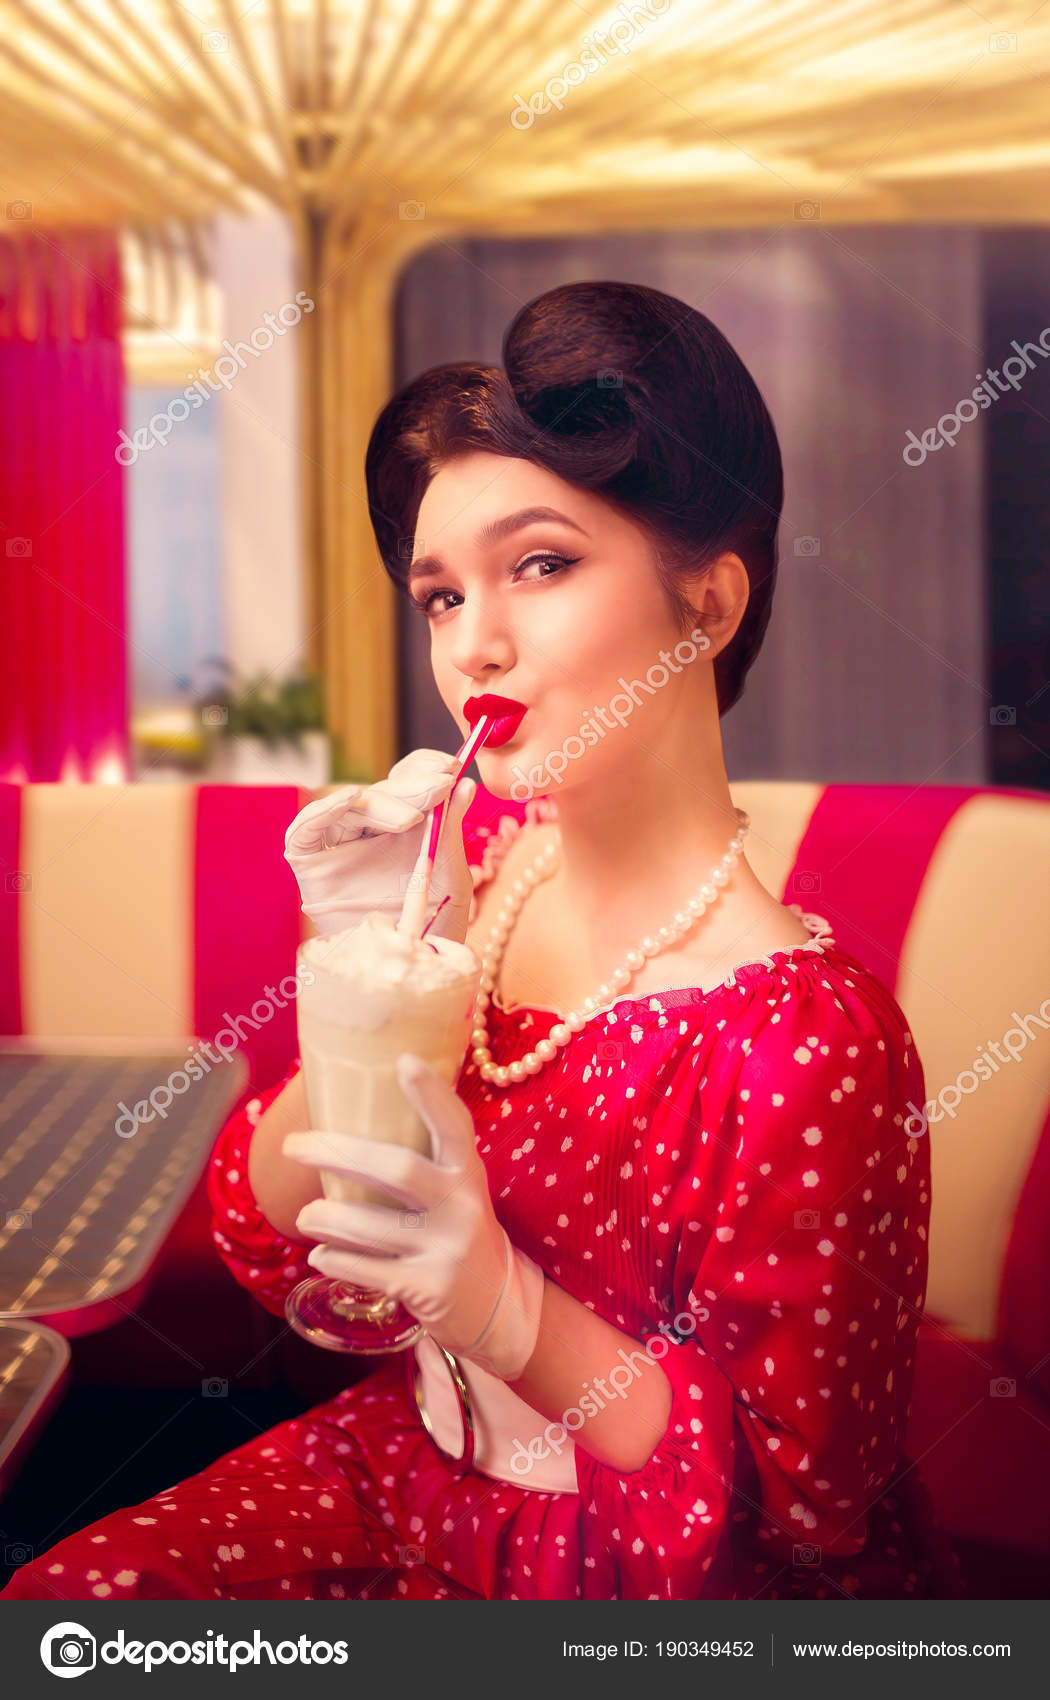 Sexy pin up woman with make up drinking milkshake in retro cafe popular retro american fashion photo by nomadsoul1